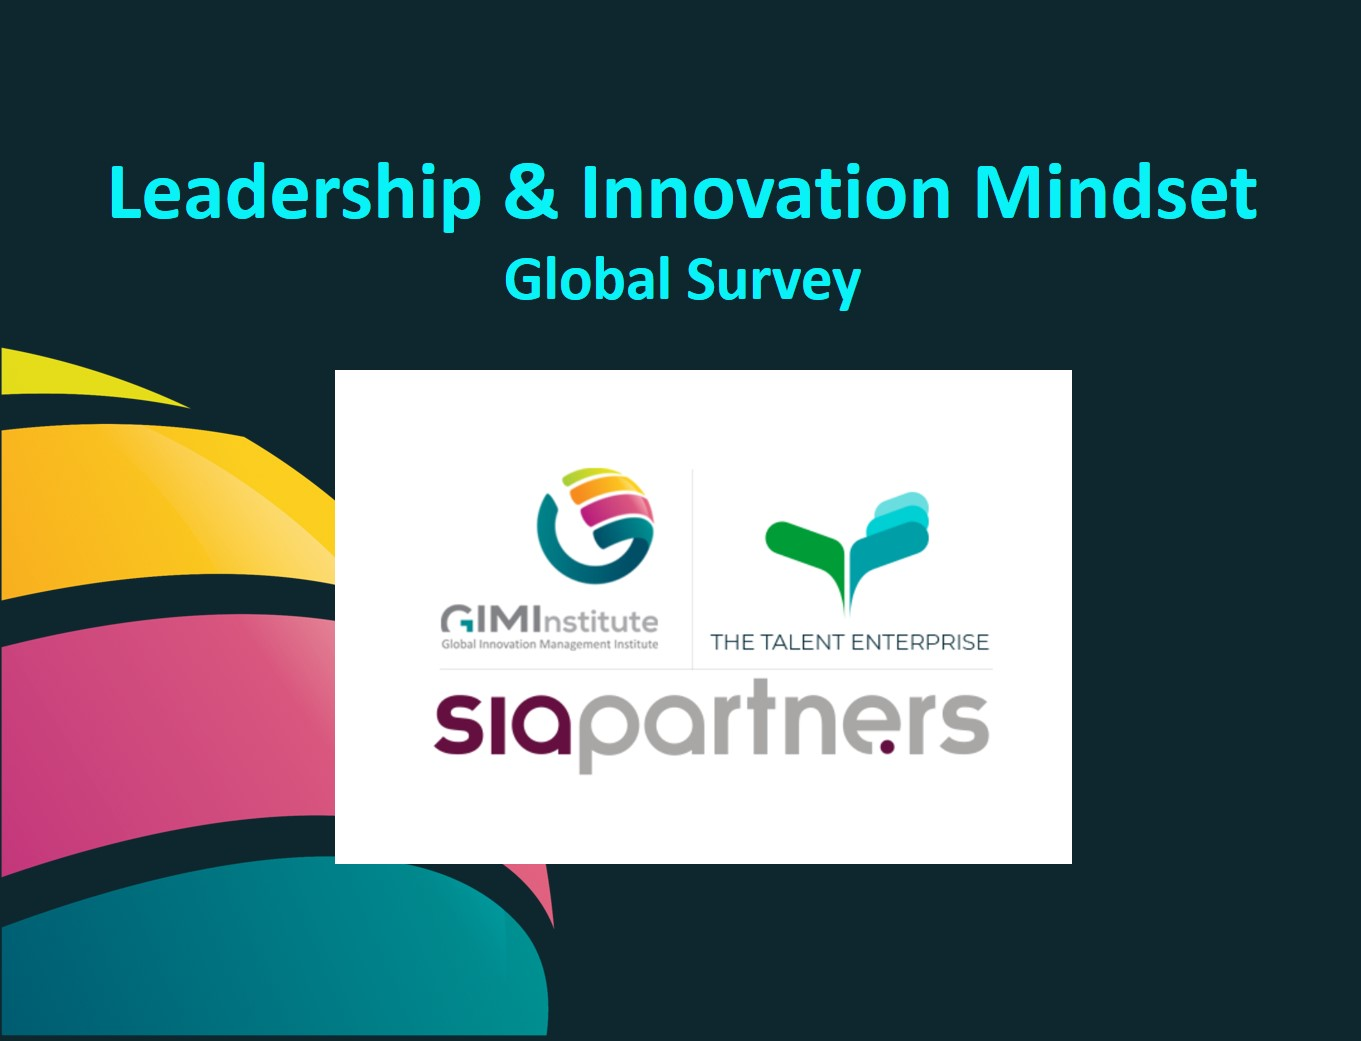 Global innovation mindset survey - GIMI